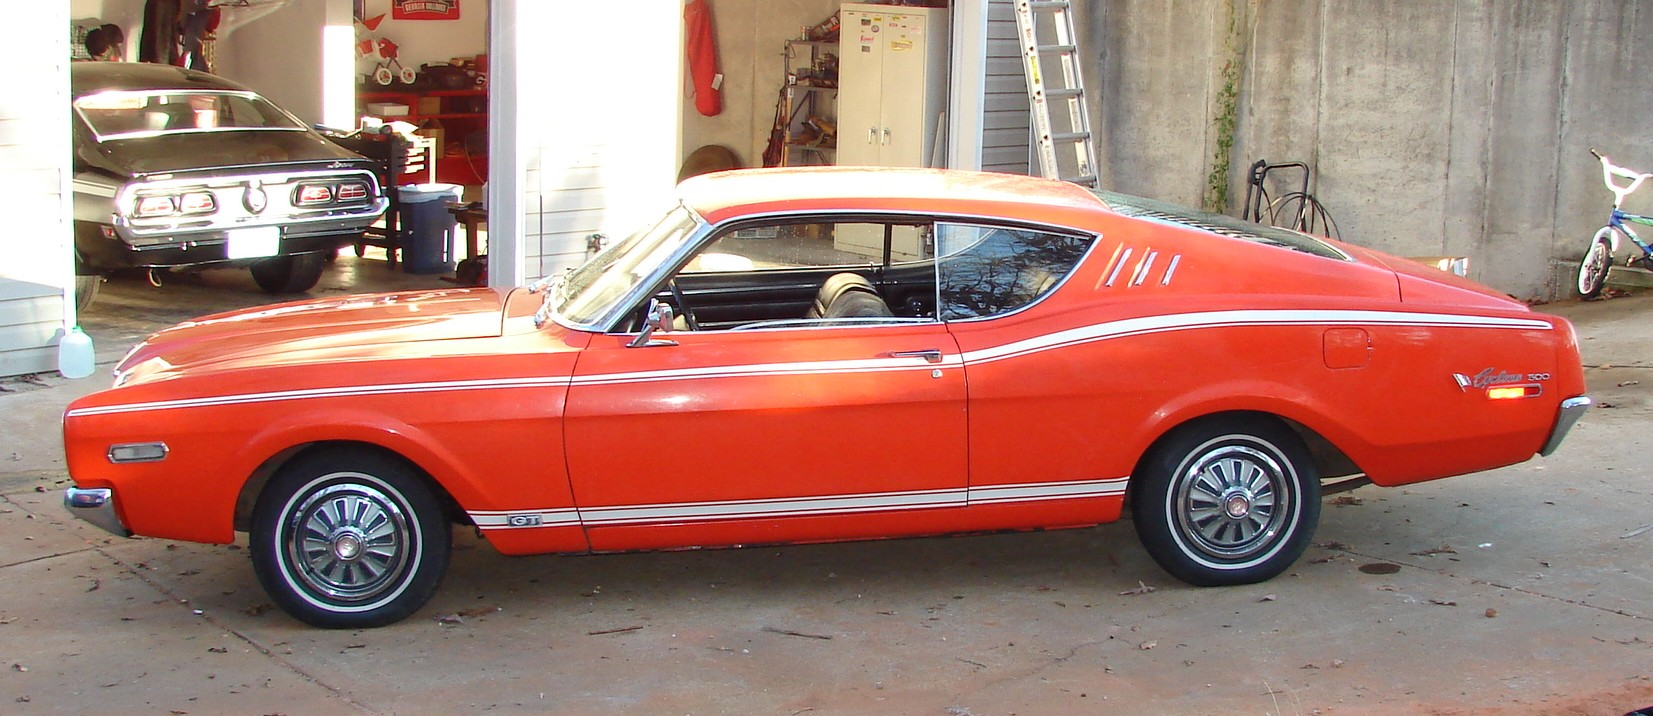 Mercury Cyclone #7